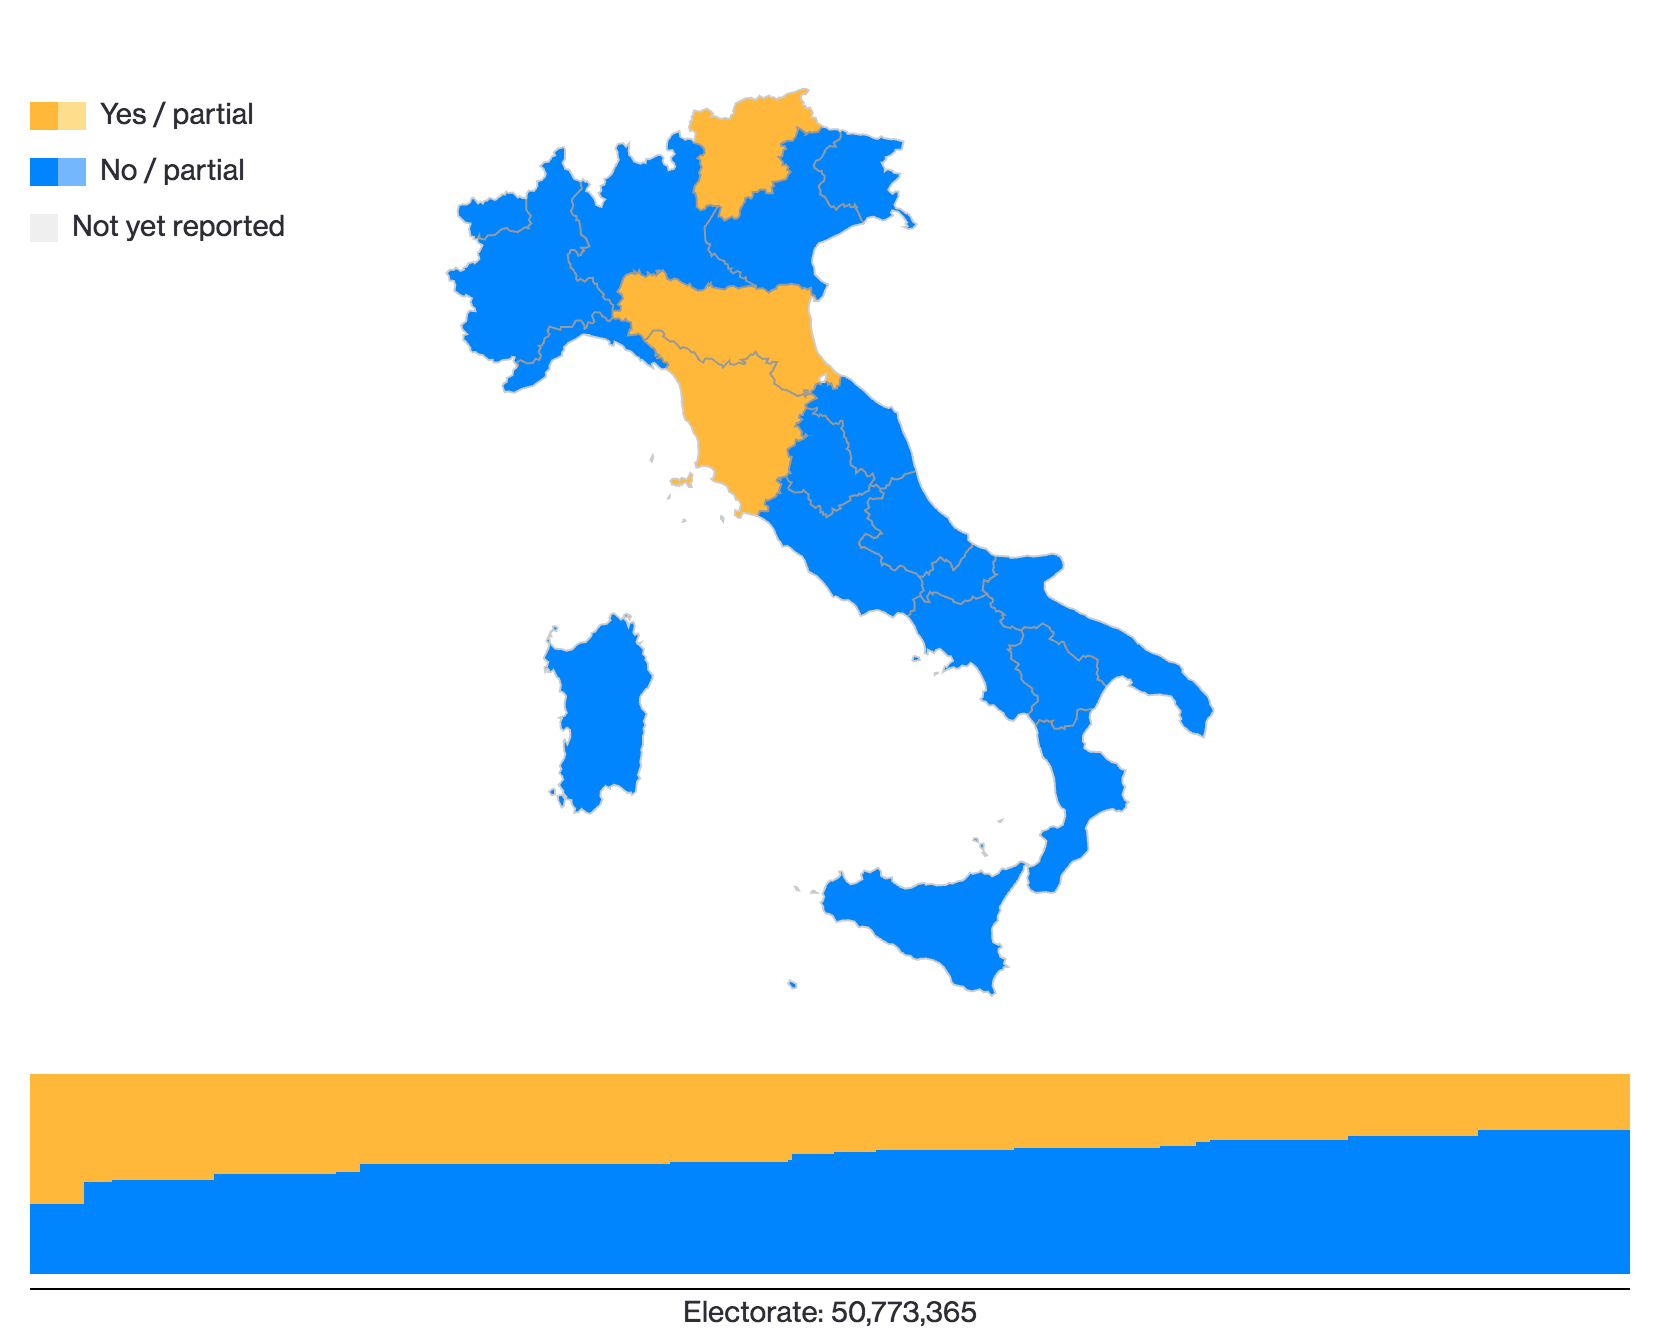 The datasets in the map and bar chart are linked, a nice touch